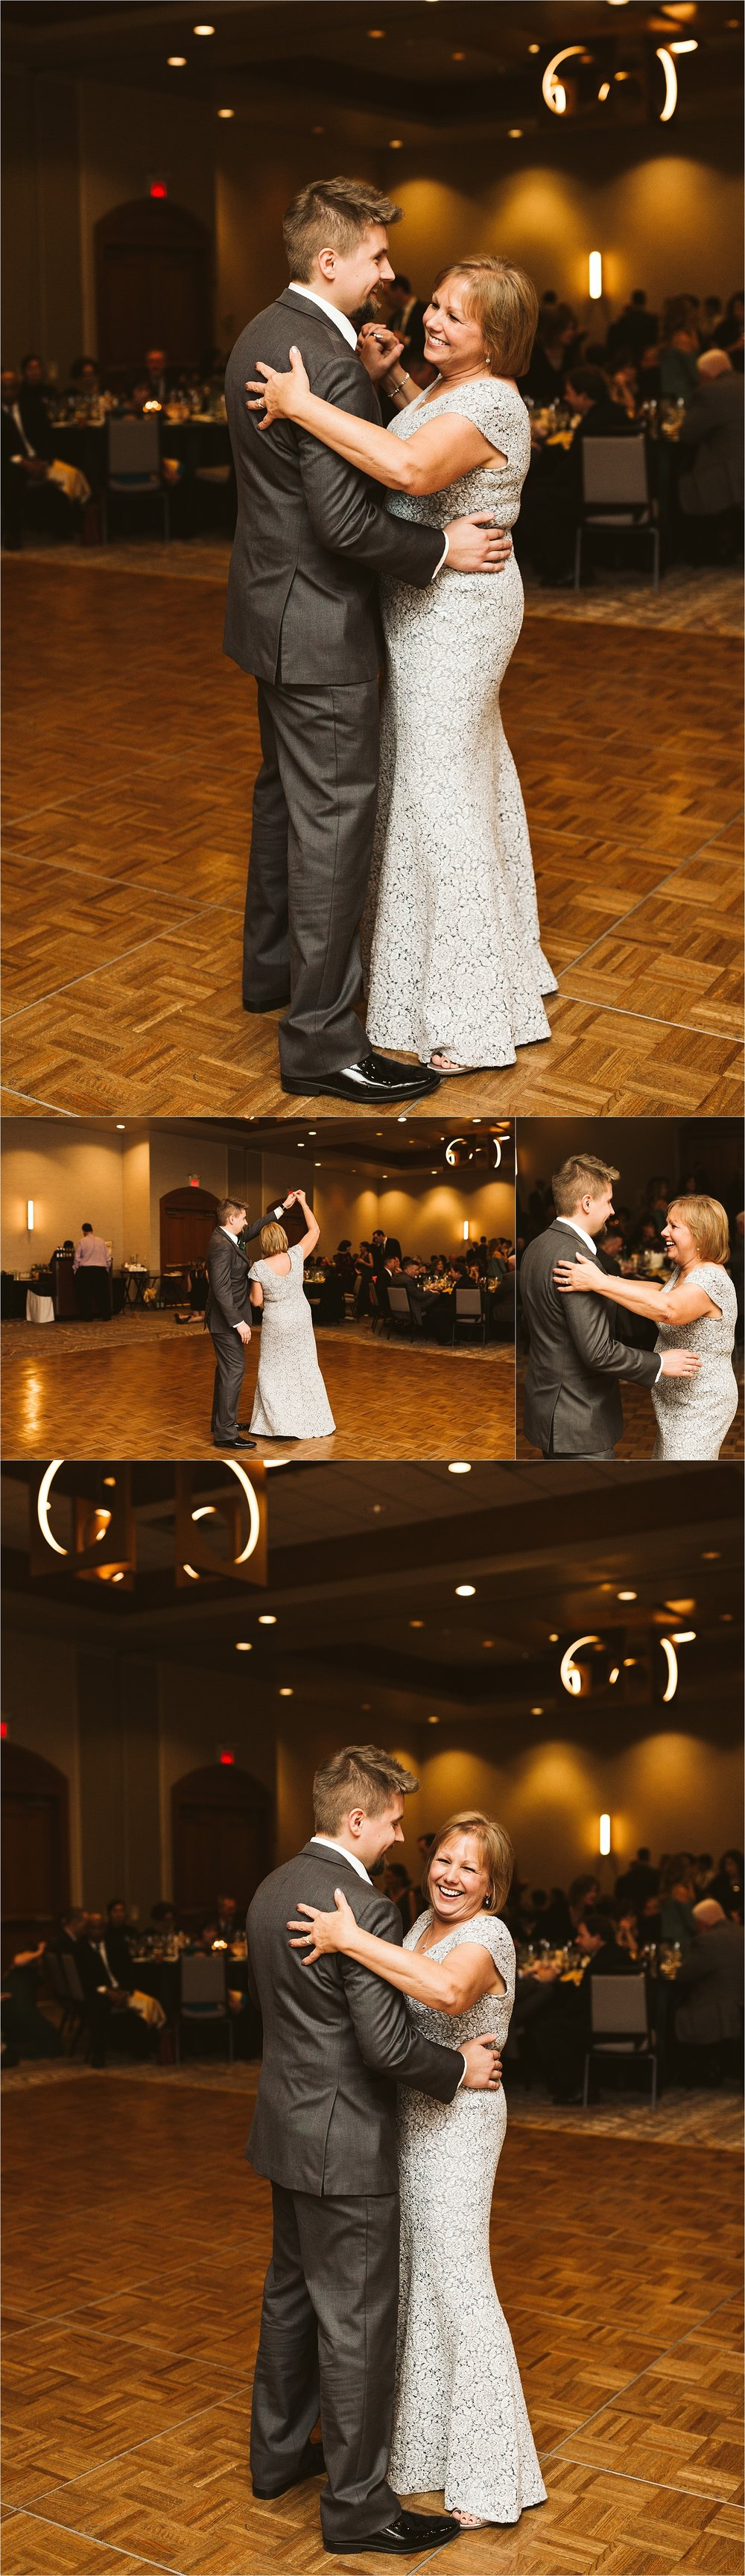 Burr Ridge Marriott Wedding_0136.jpg